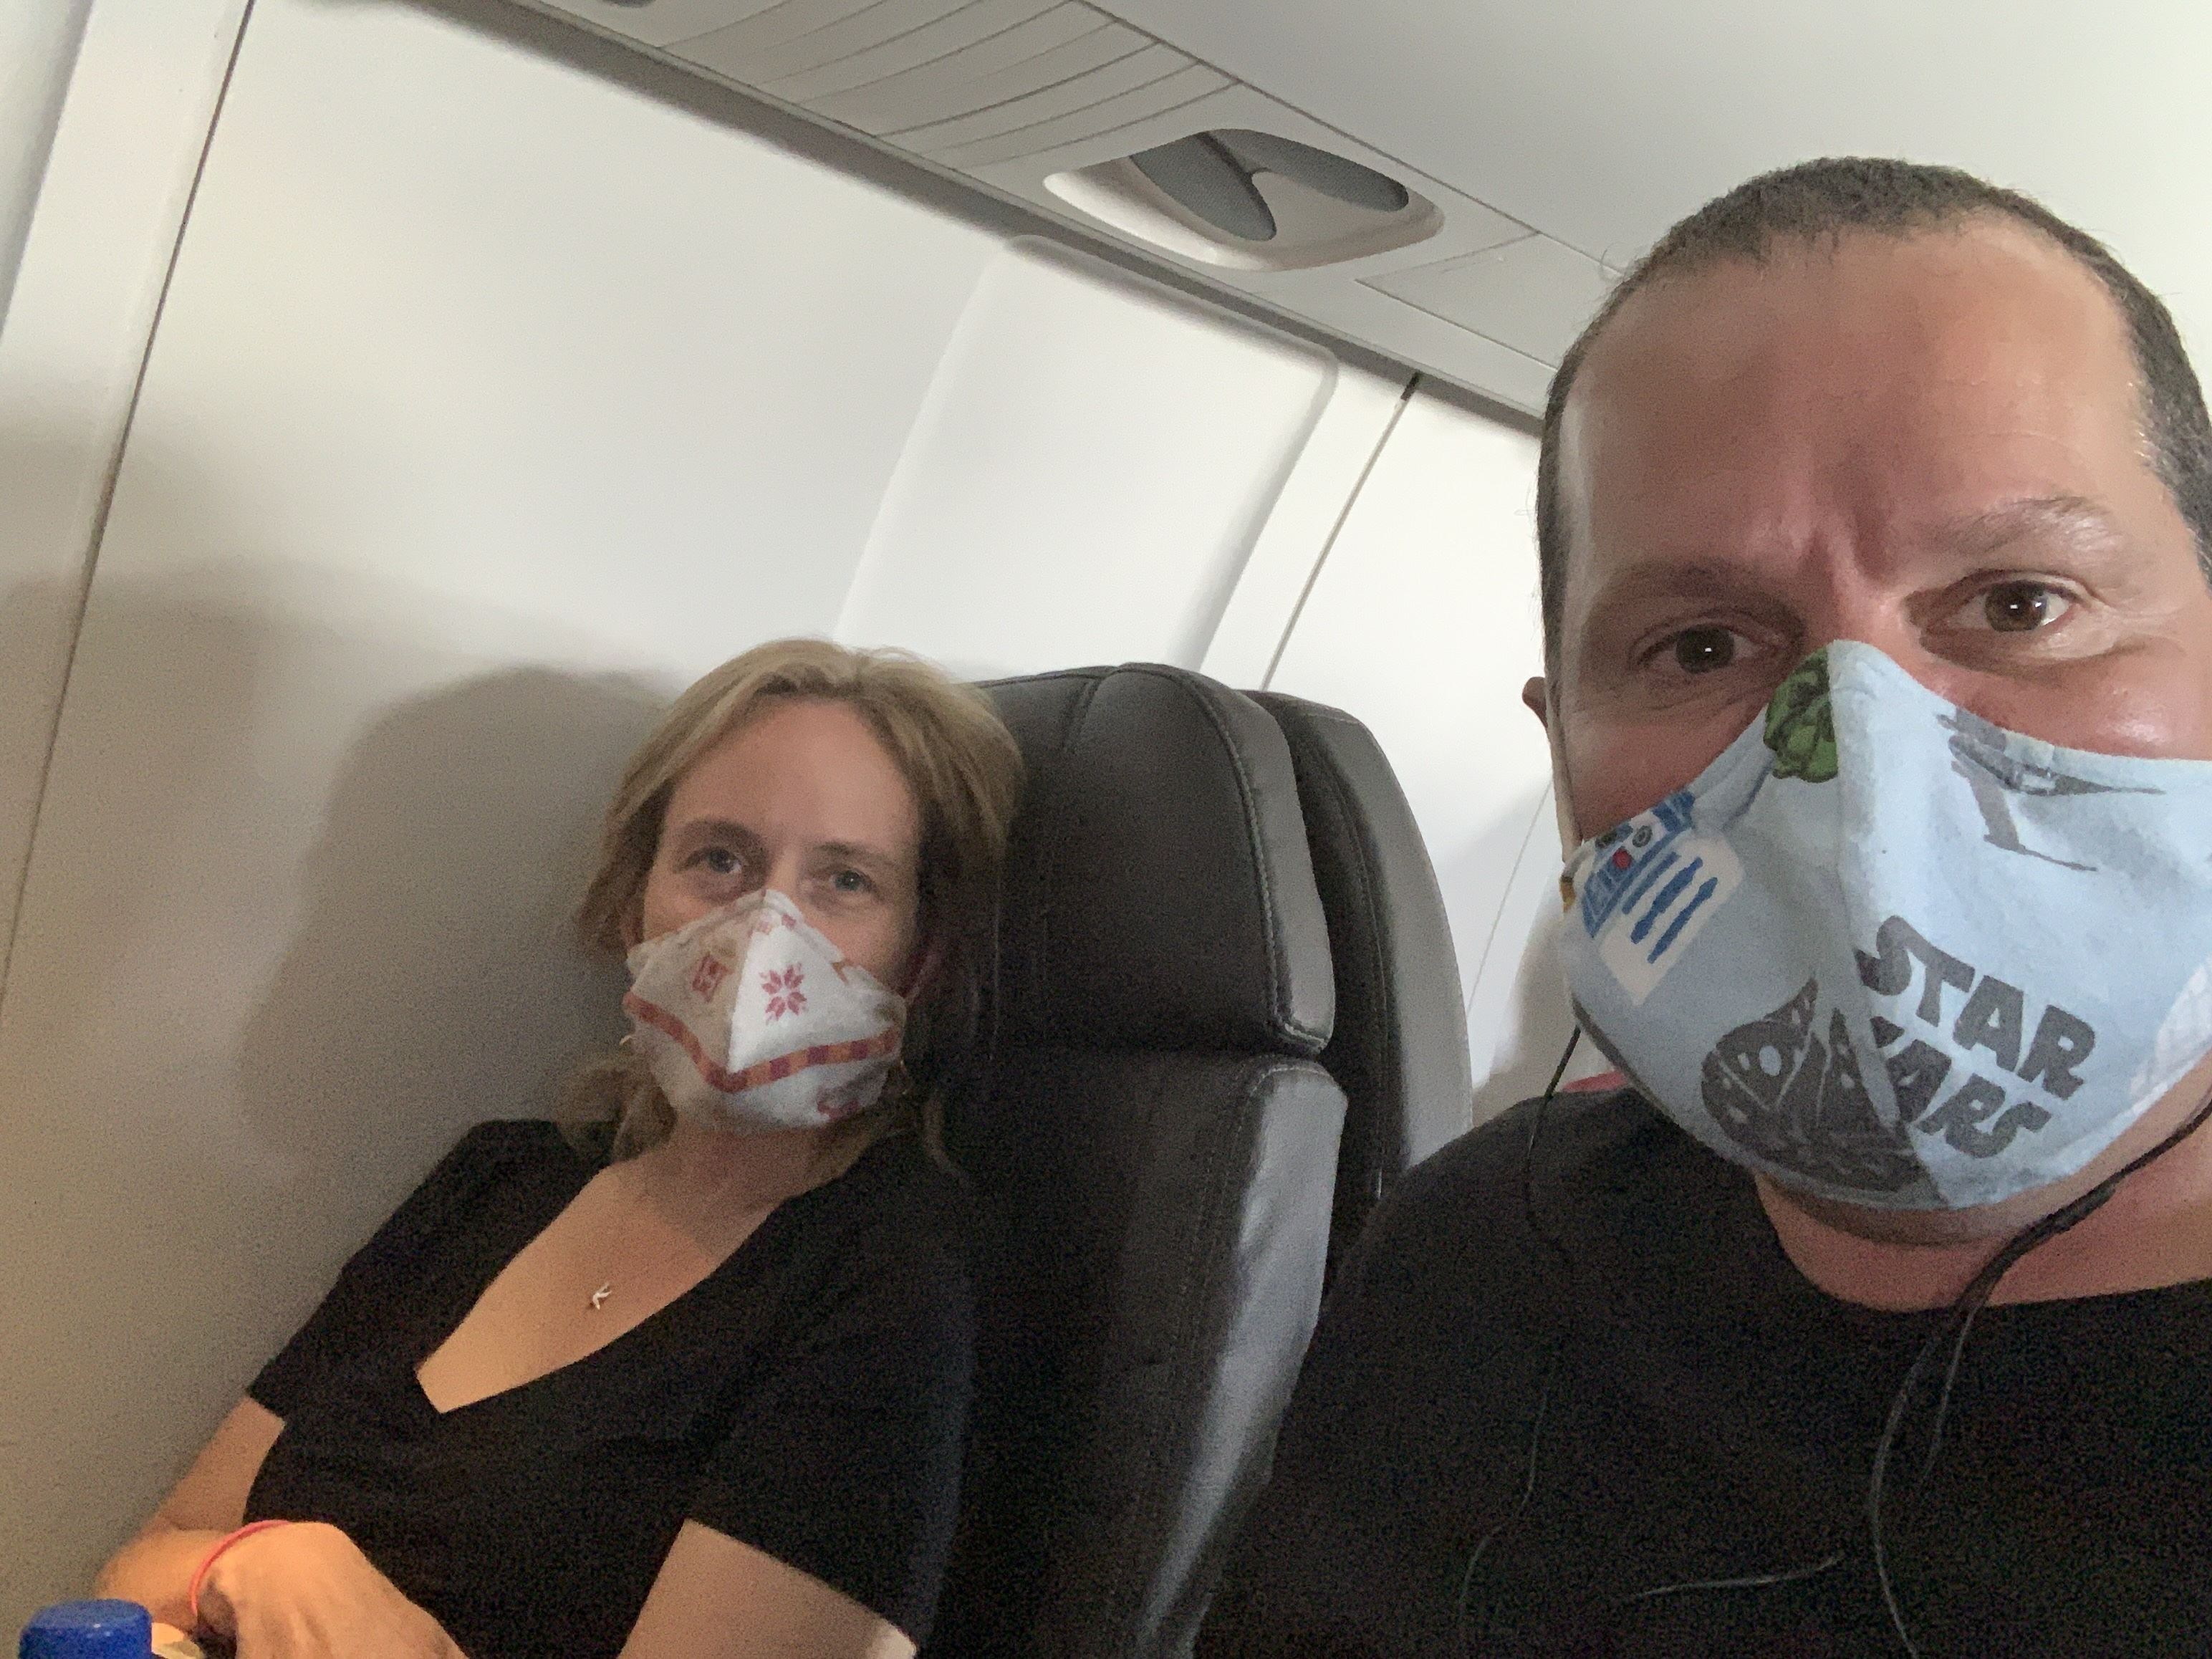 Wearing masks while flying during COVID